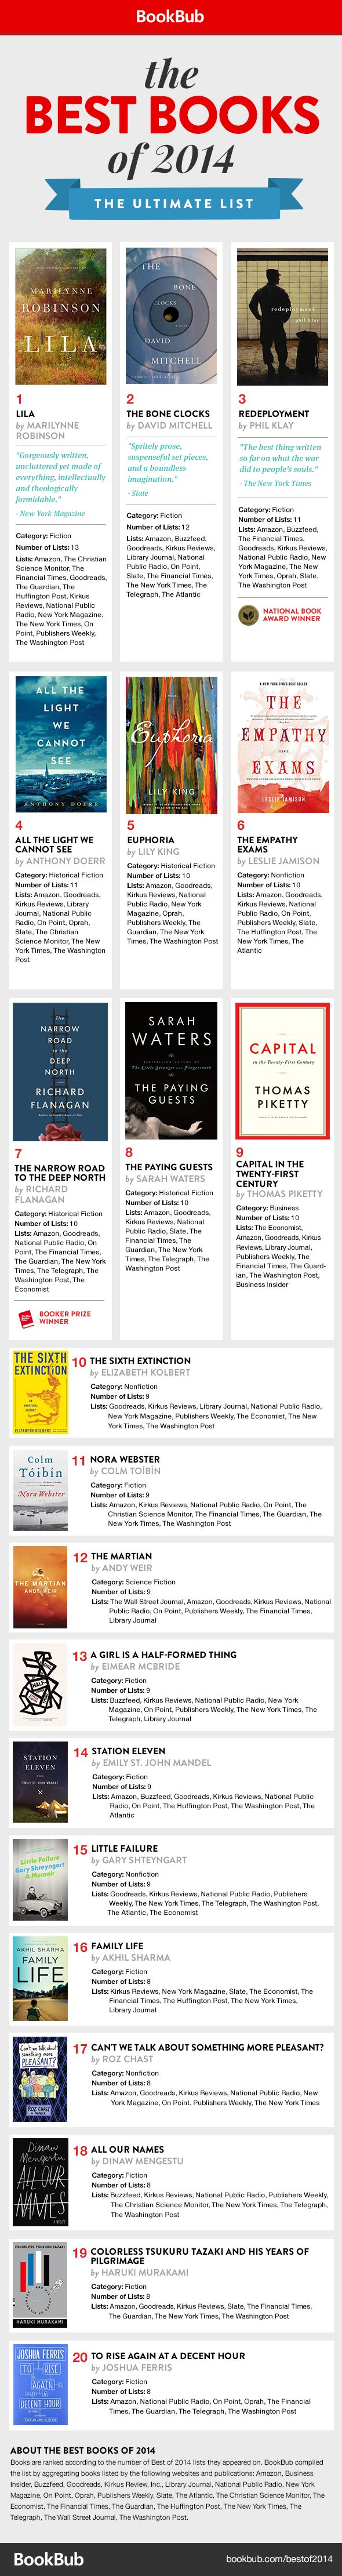 The Best Books of 2014 - The Ultimate List